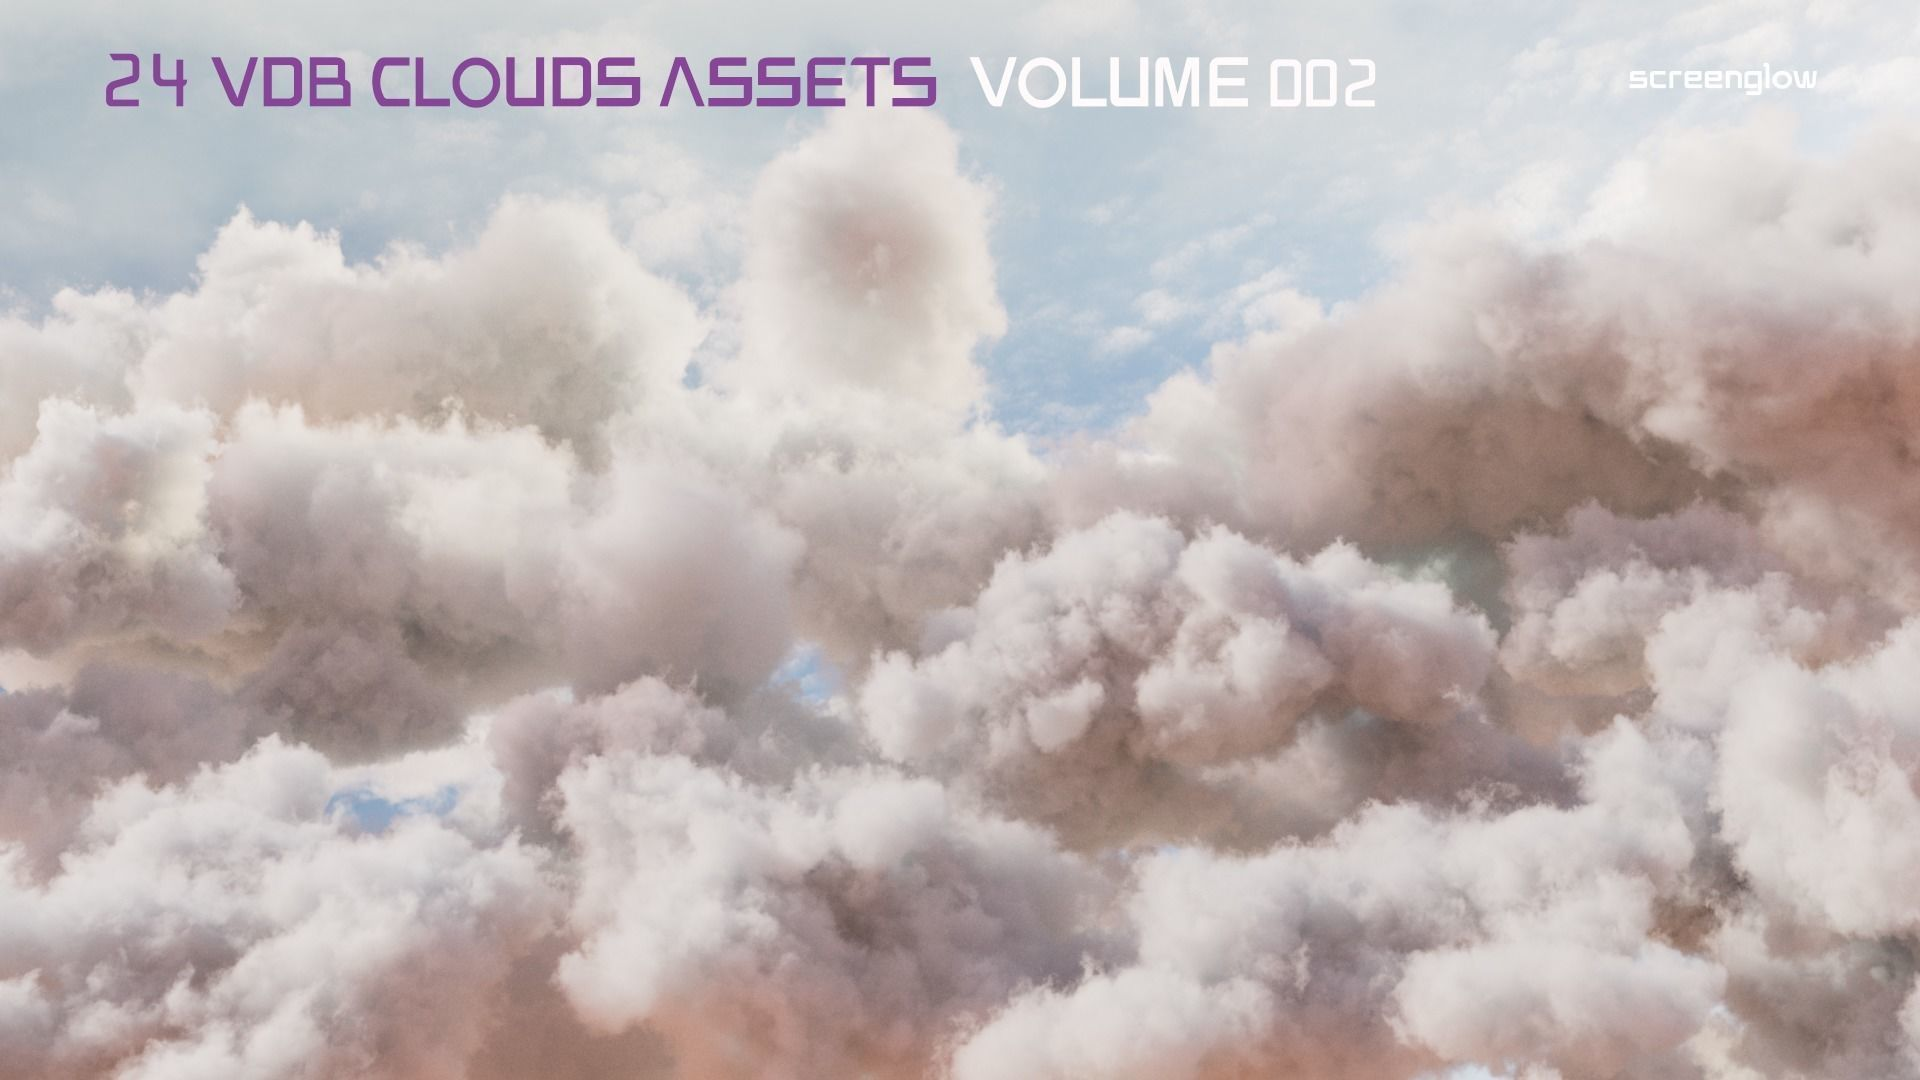 VDB Clouds Volume 2